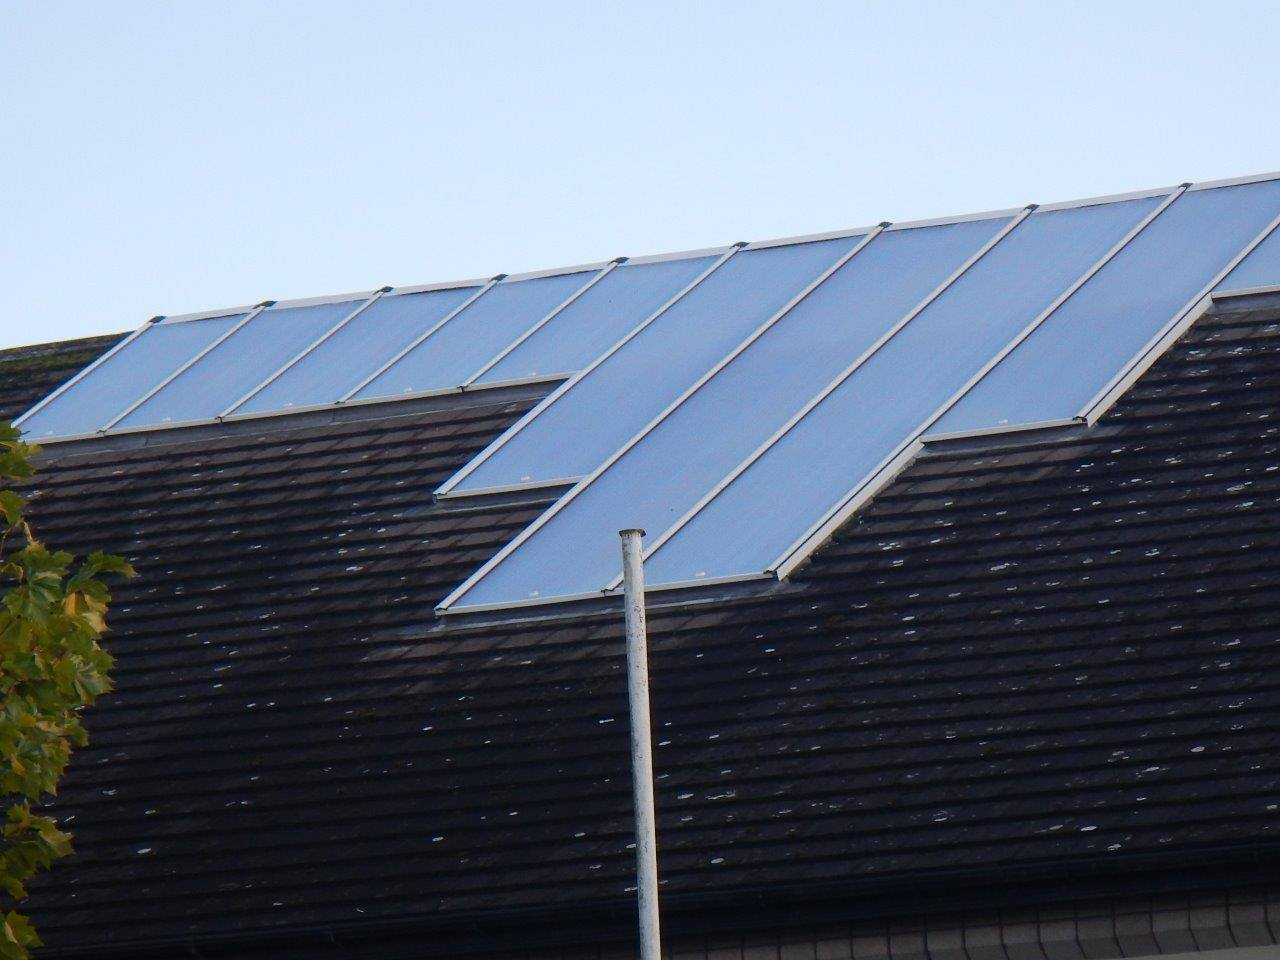 Foynes Community centre roof